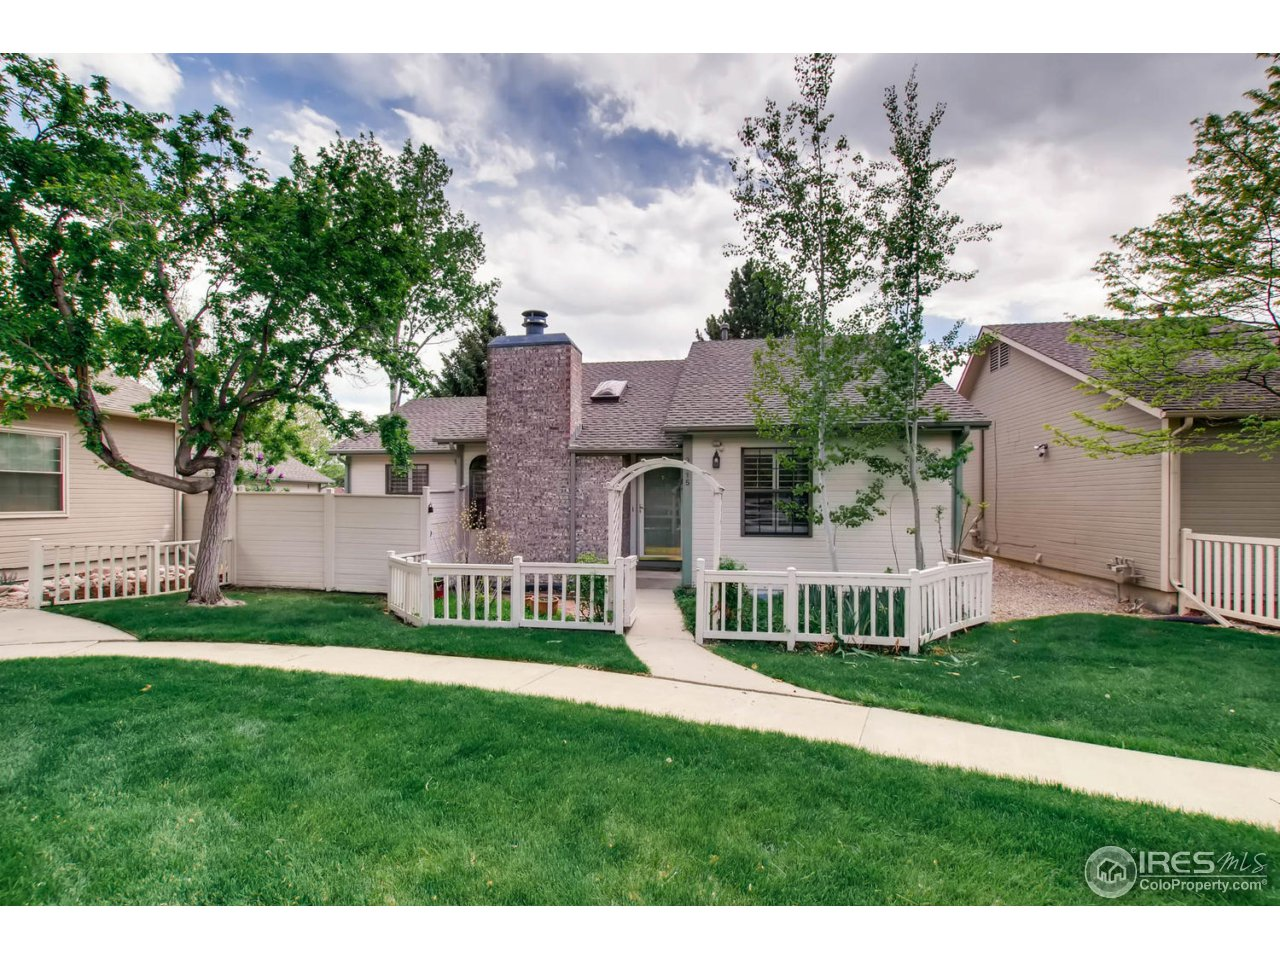 3115 Lake Park Way, Longmont CO 80503